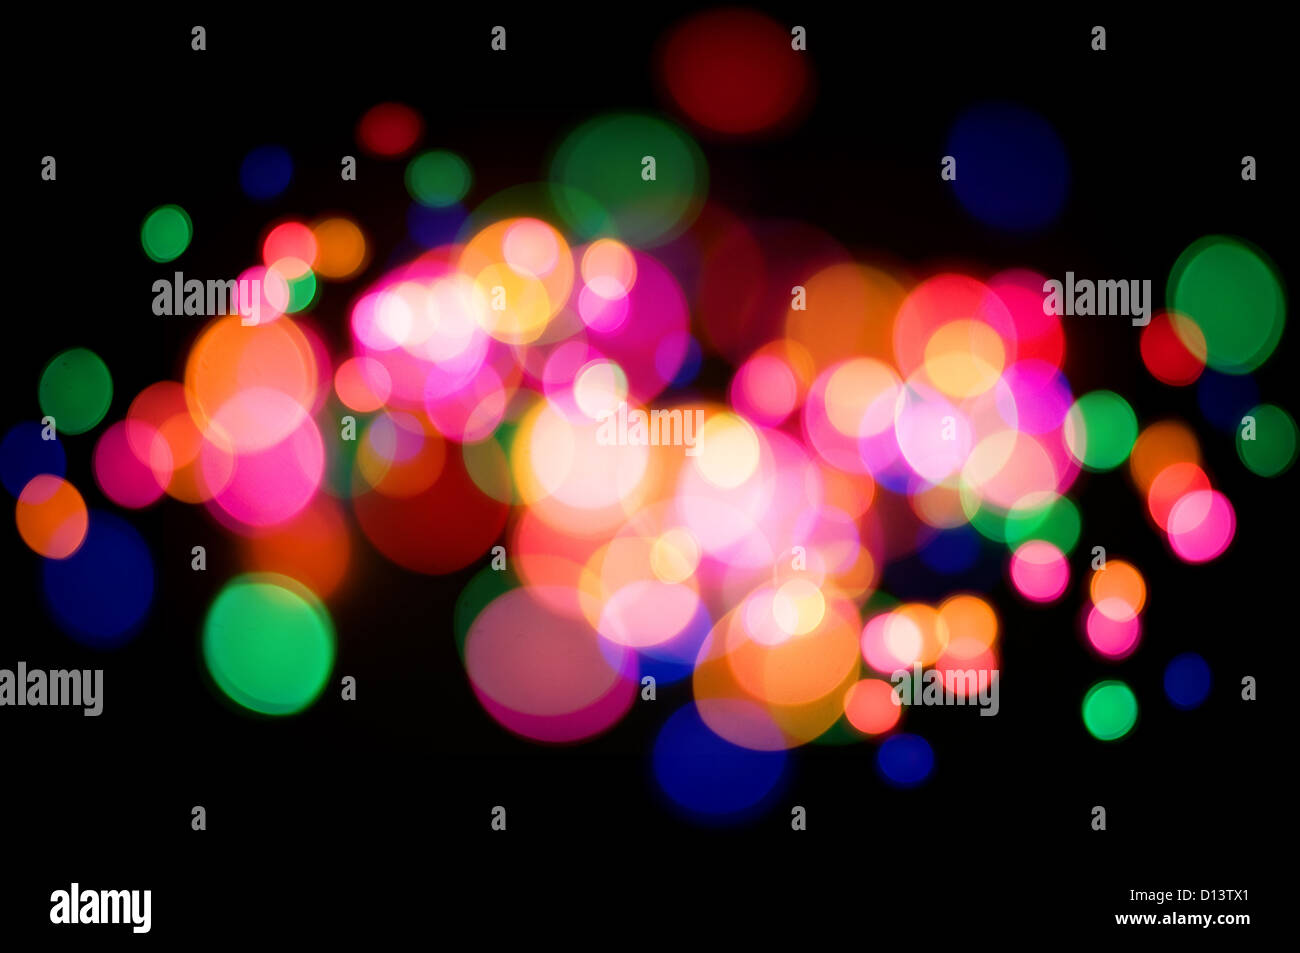 Abstract lights background - Stock Image